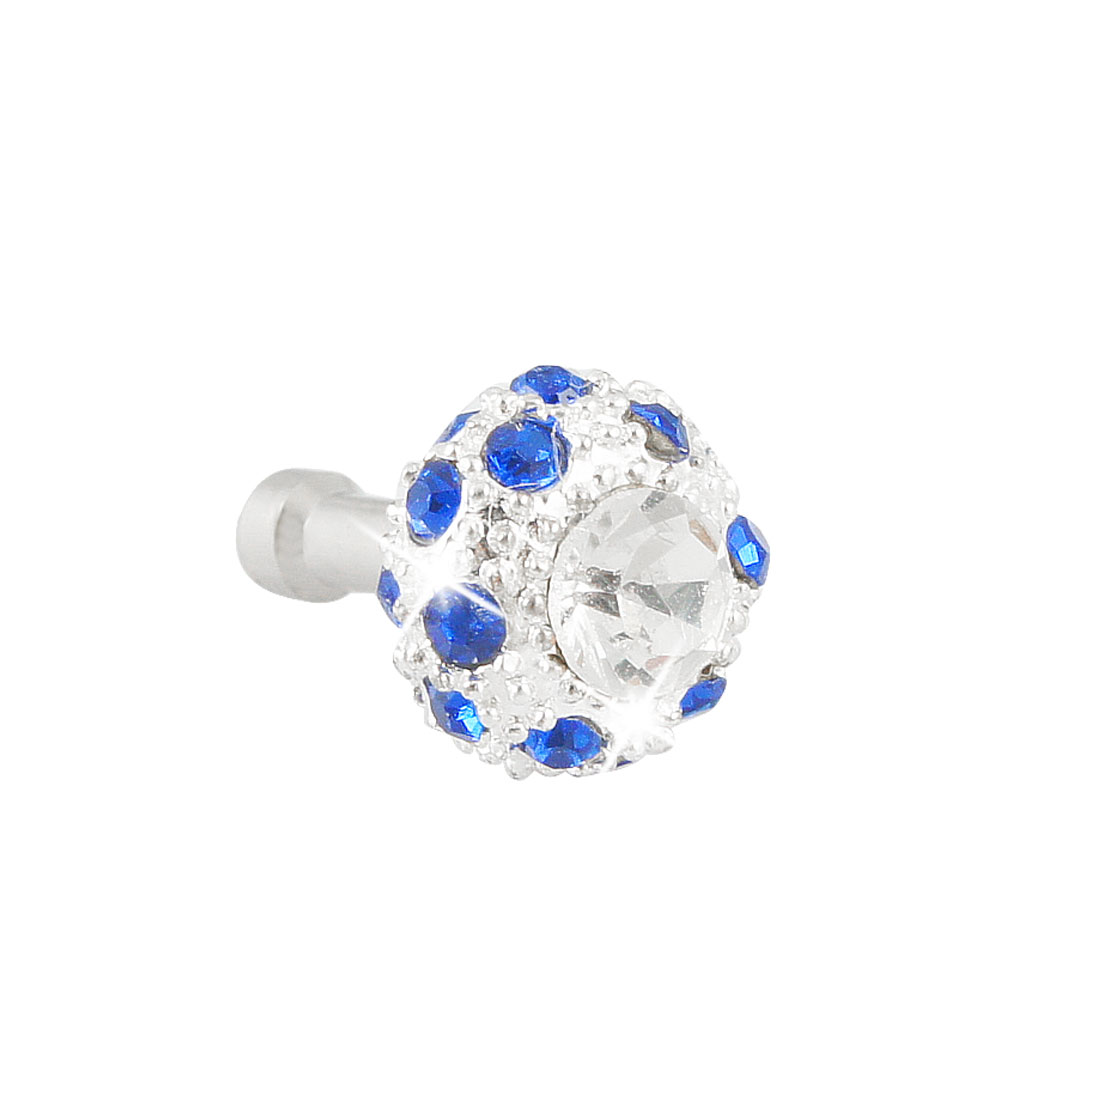 Cellphone Laptop Bling Royal Blue Crystal 3.5mm Earphone Anti Dust Plug Stopper